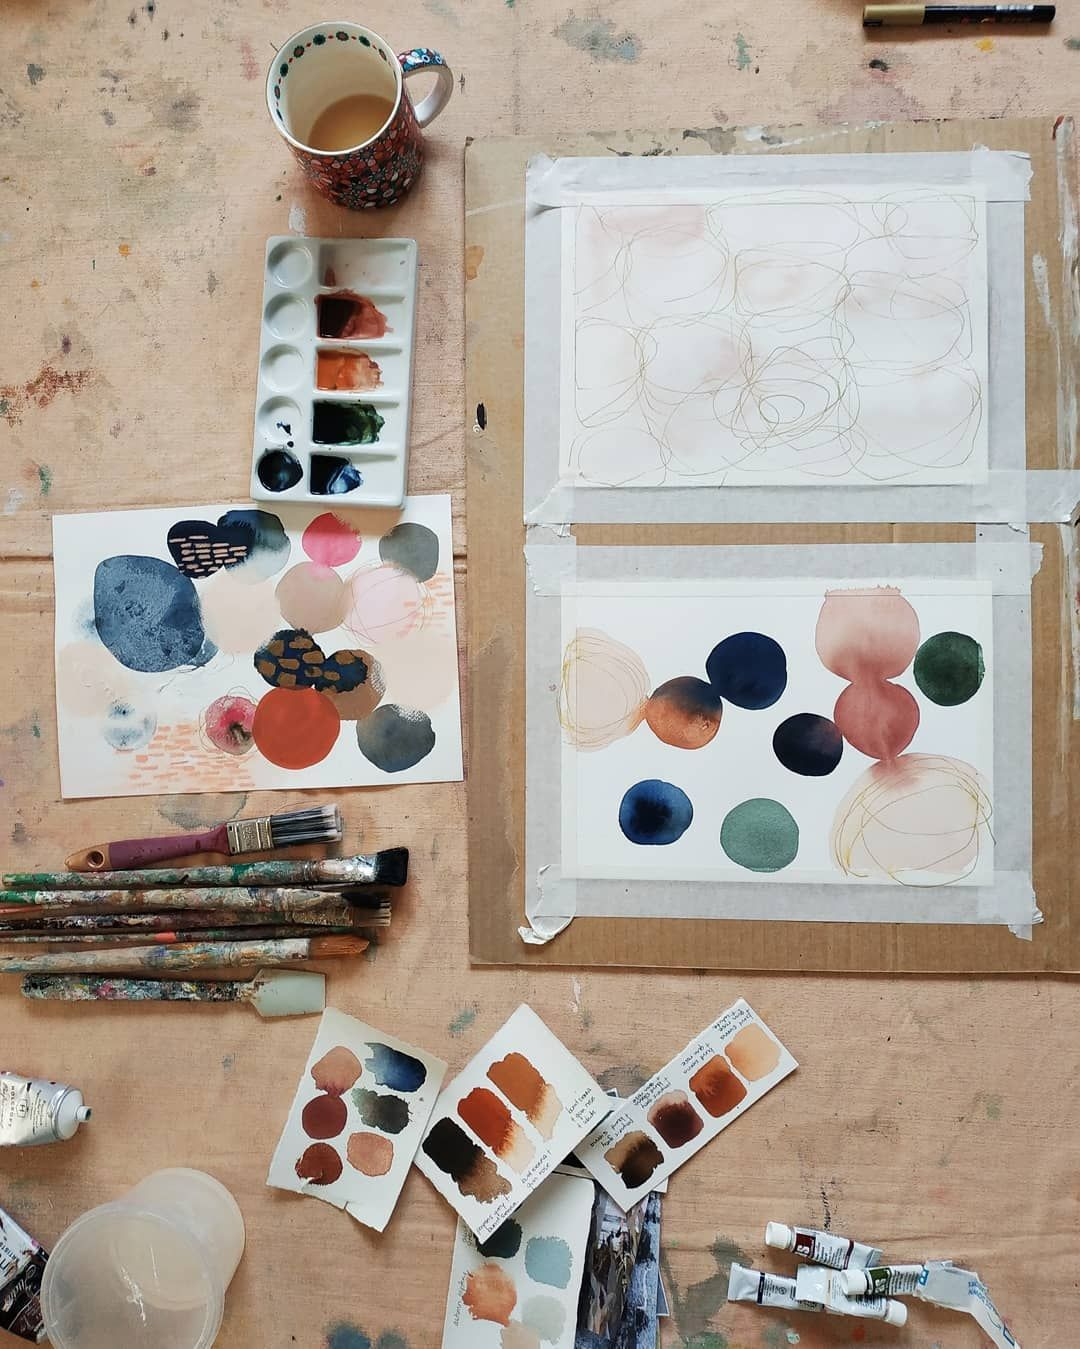 Laura Horn On Instagram Birds Eye View Studioscenes